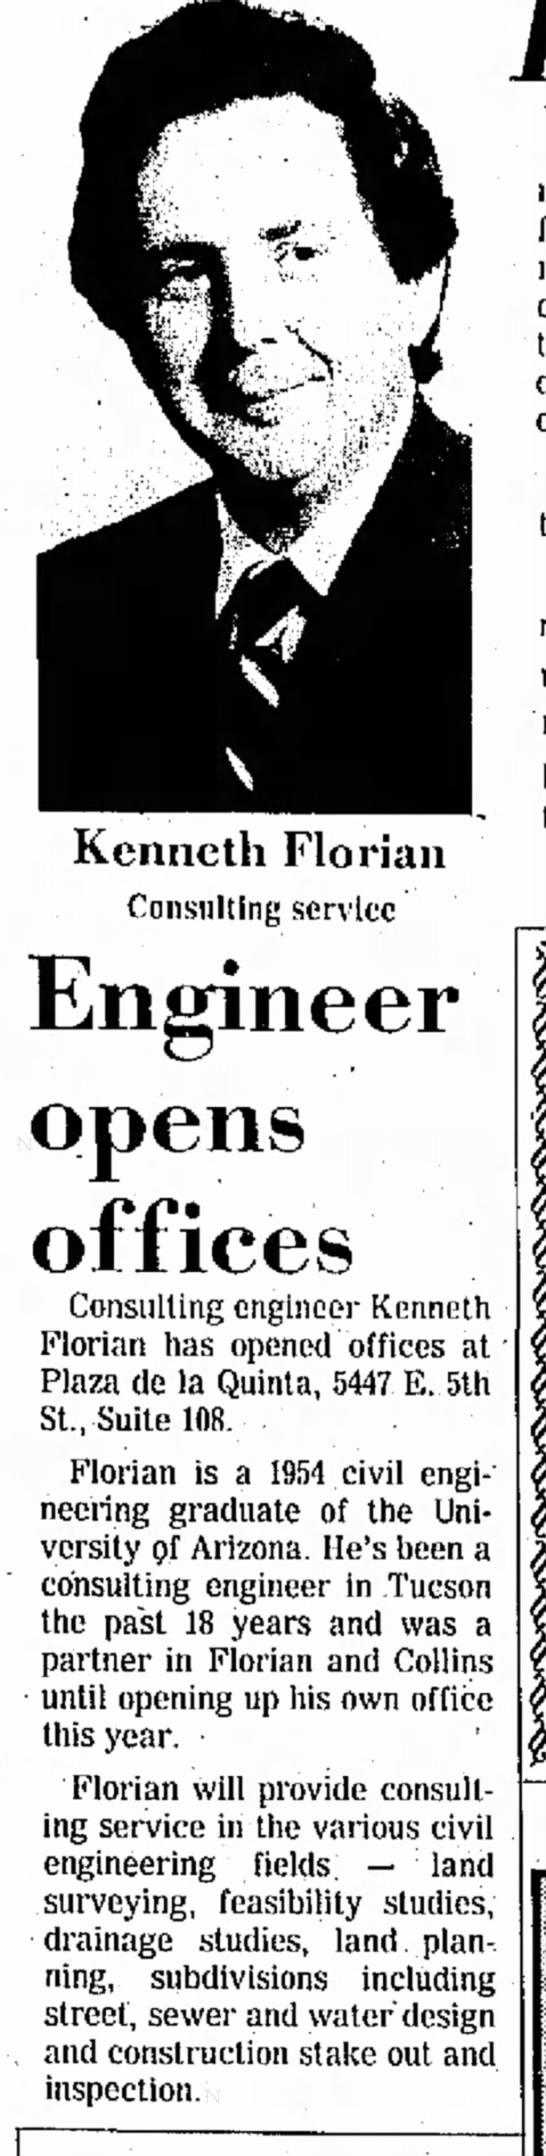 Engineer Opens Office = Tucson Daily Citizen Feb 5, 1974 - 1973 1969 up 35 profitable of a of Kenneth...